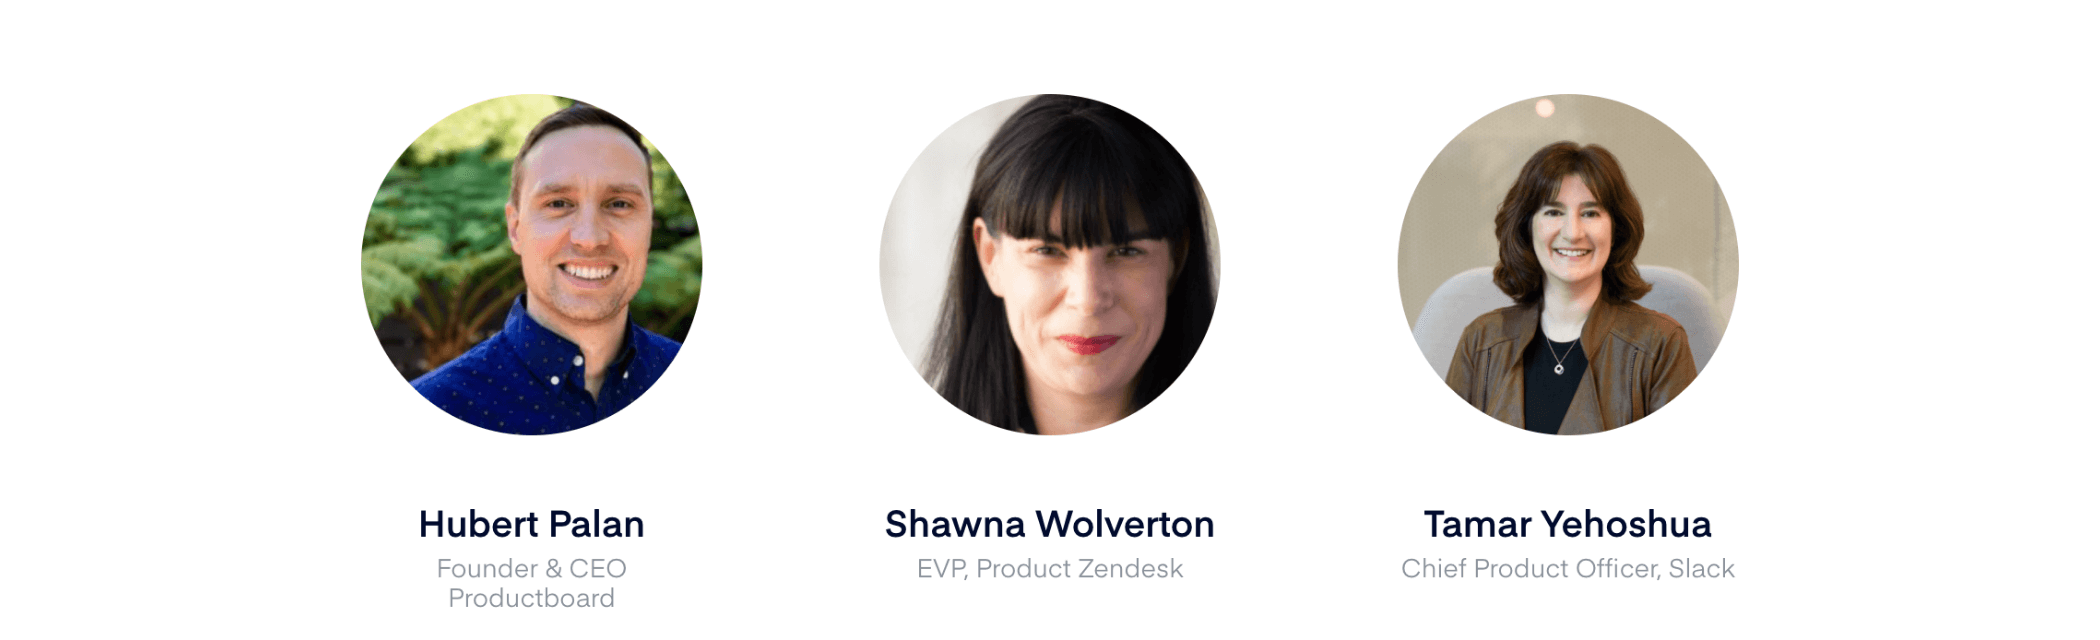 How product leaders at Slack & Zendesk approach excellent product management